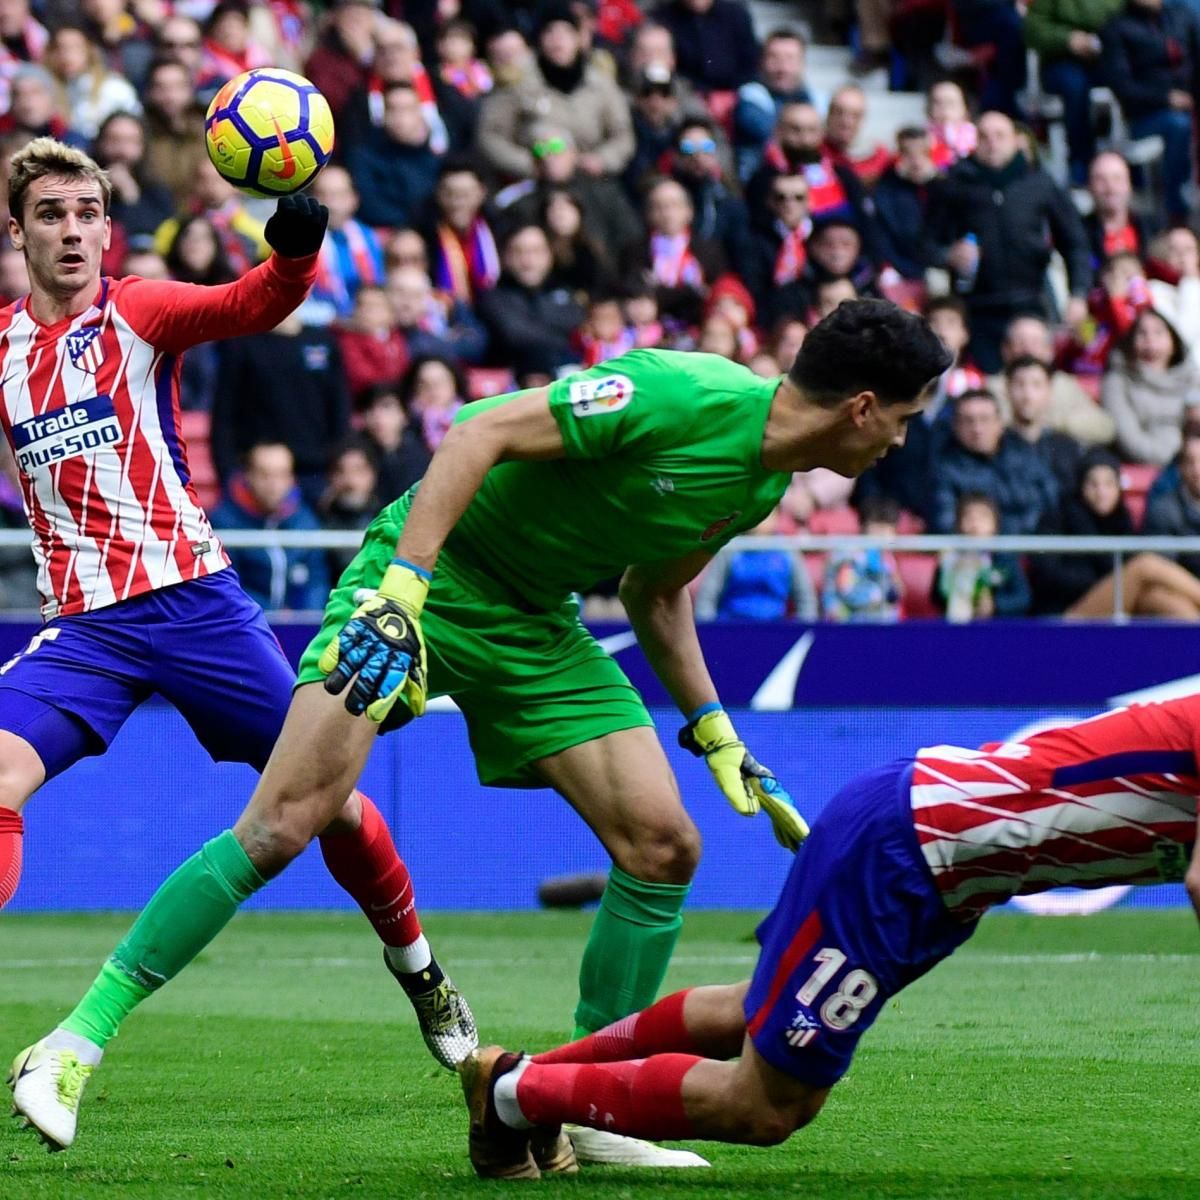 La liga results 2018 scores and updated table after saturday 39 s week 20 matches bleacher - La liga latest results and table ...